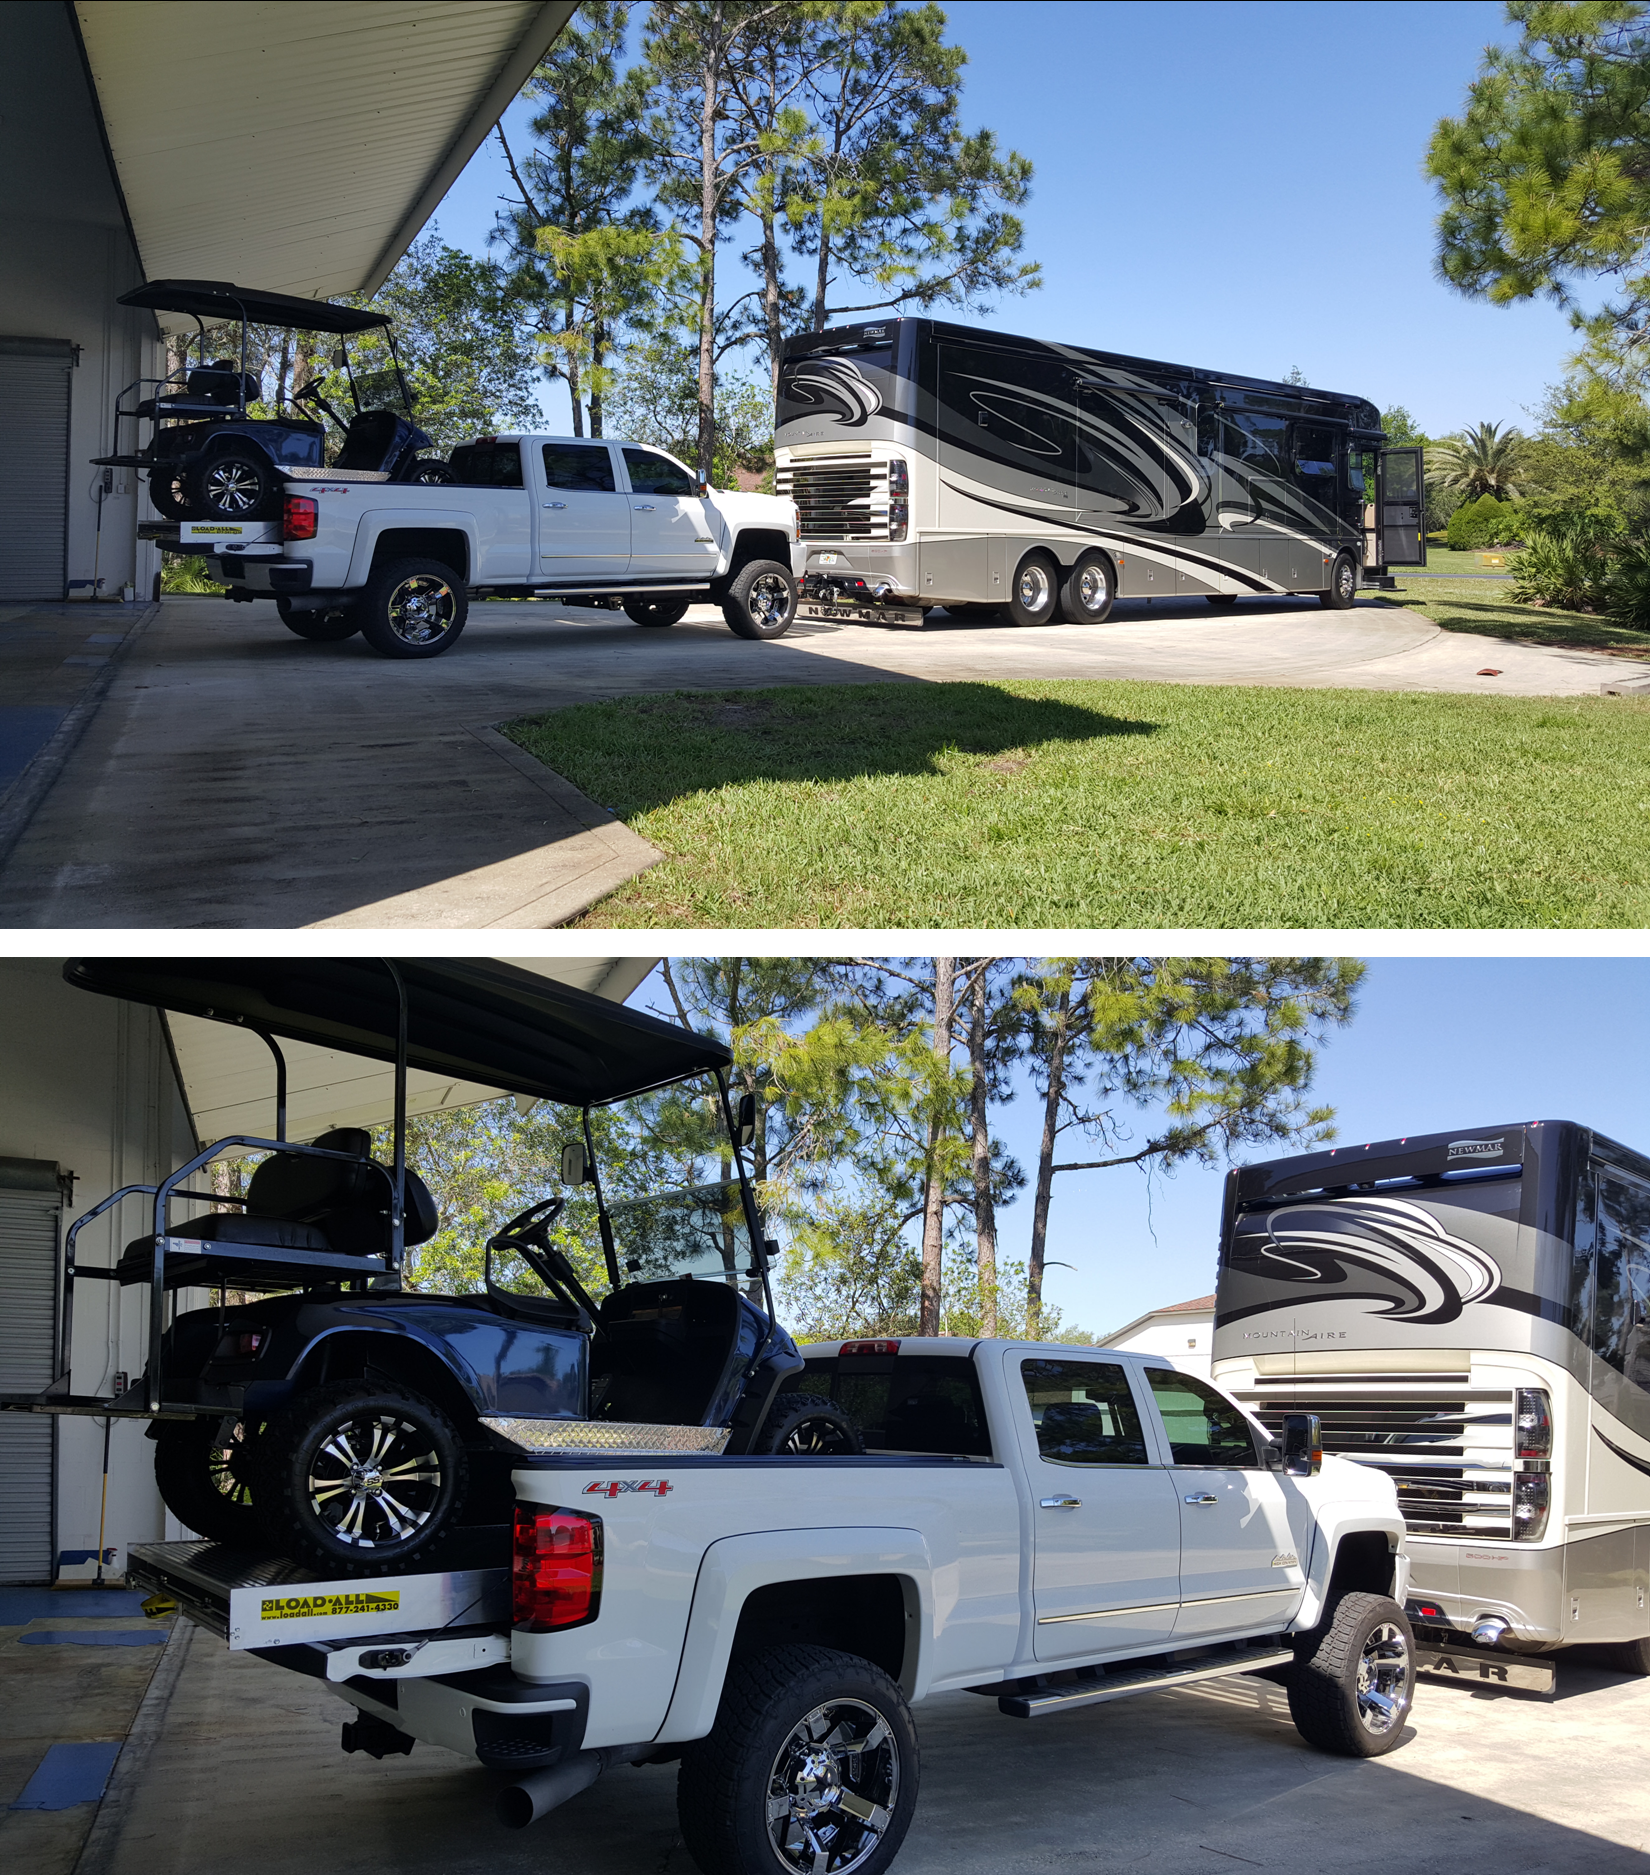 Leaving Nothing Behind - Motor-home towing Chevrolet with ... on ford truck bed extender, kayak truck bed extender, chevrolet truck bed extender, hyundai truck bed extender, golf cart truck ramps, golf cart roof extender, nissan truck bed extender, golf cart wheel extender,